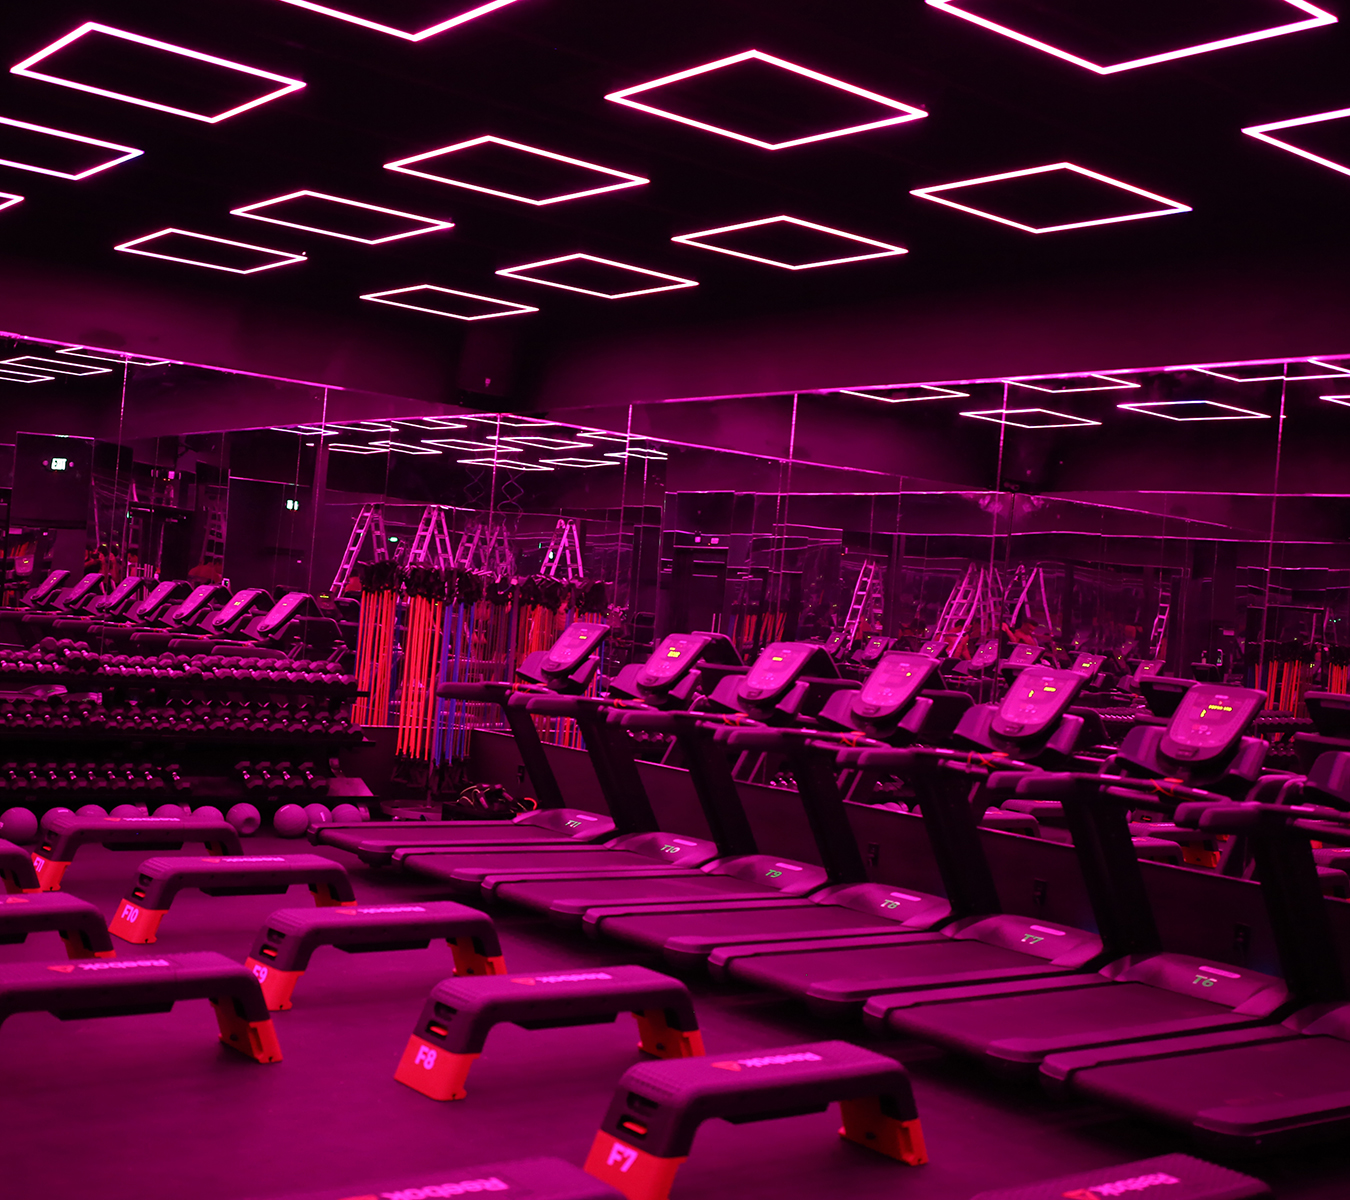 012619.strength-room-pink.jpg